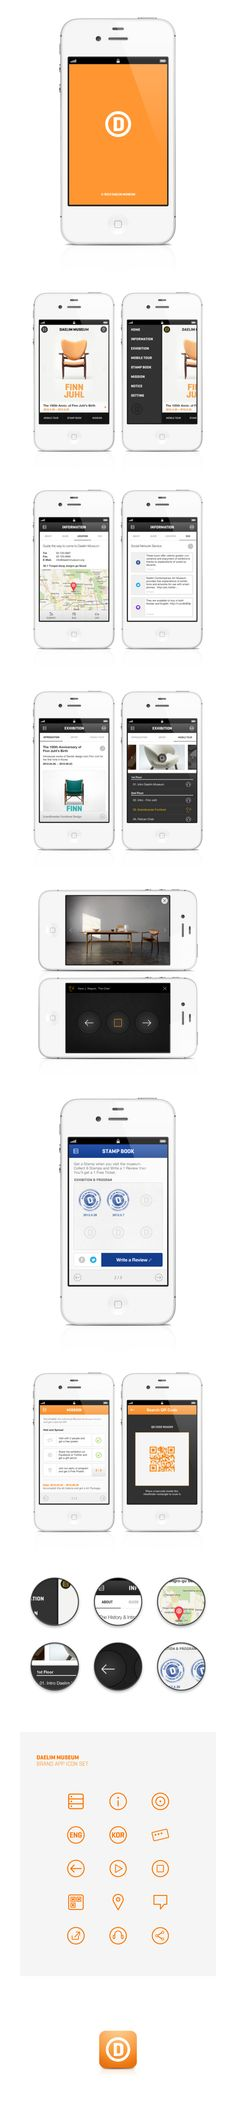 """Daelim Museum Mobile App - """"Located in the center of Seoul, Daelim Contemporary Art Museum aims to offer vitality and relaxation in life, taking """"lifestyle"""" as a central concept, and to function as a comfortable cultural space for city dwellers. Use this app to get information about the museum and exhibitions, learn about artists and works by listening audio guides, get a stamps for a free ticket, accomplish the missions for special gifts."""""""